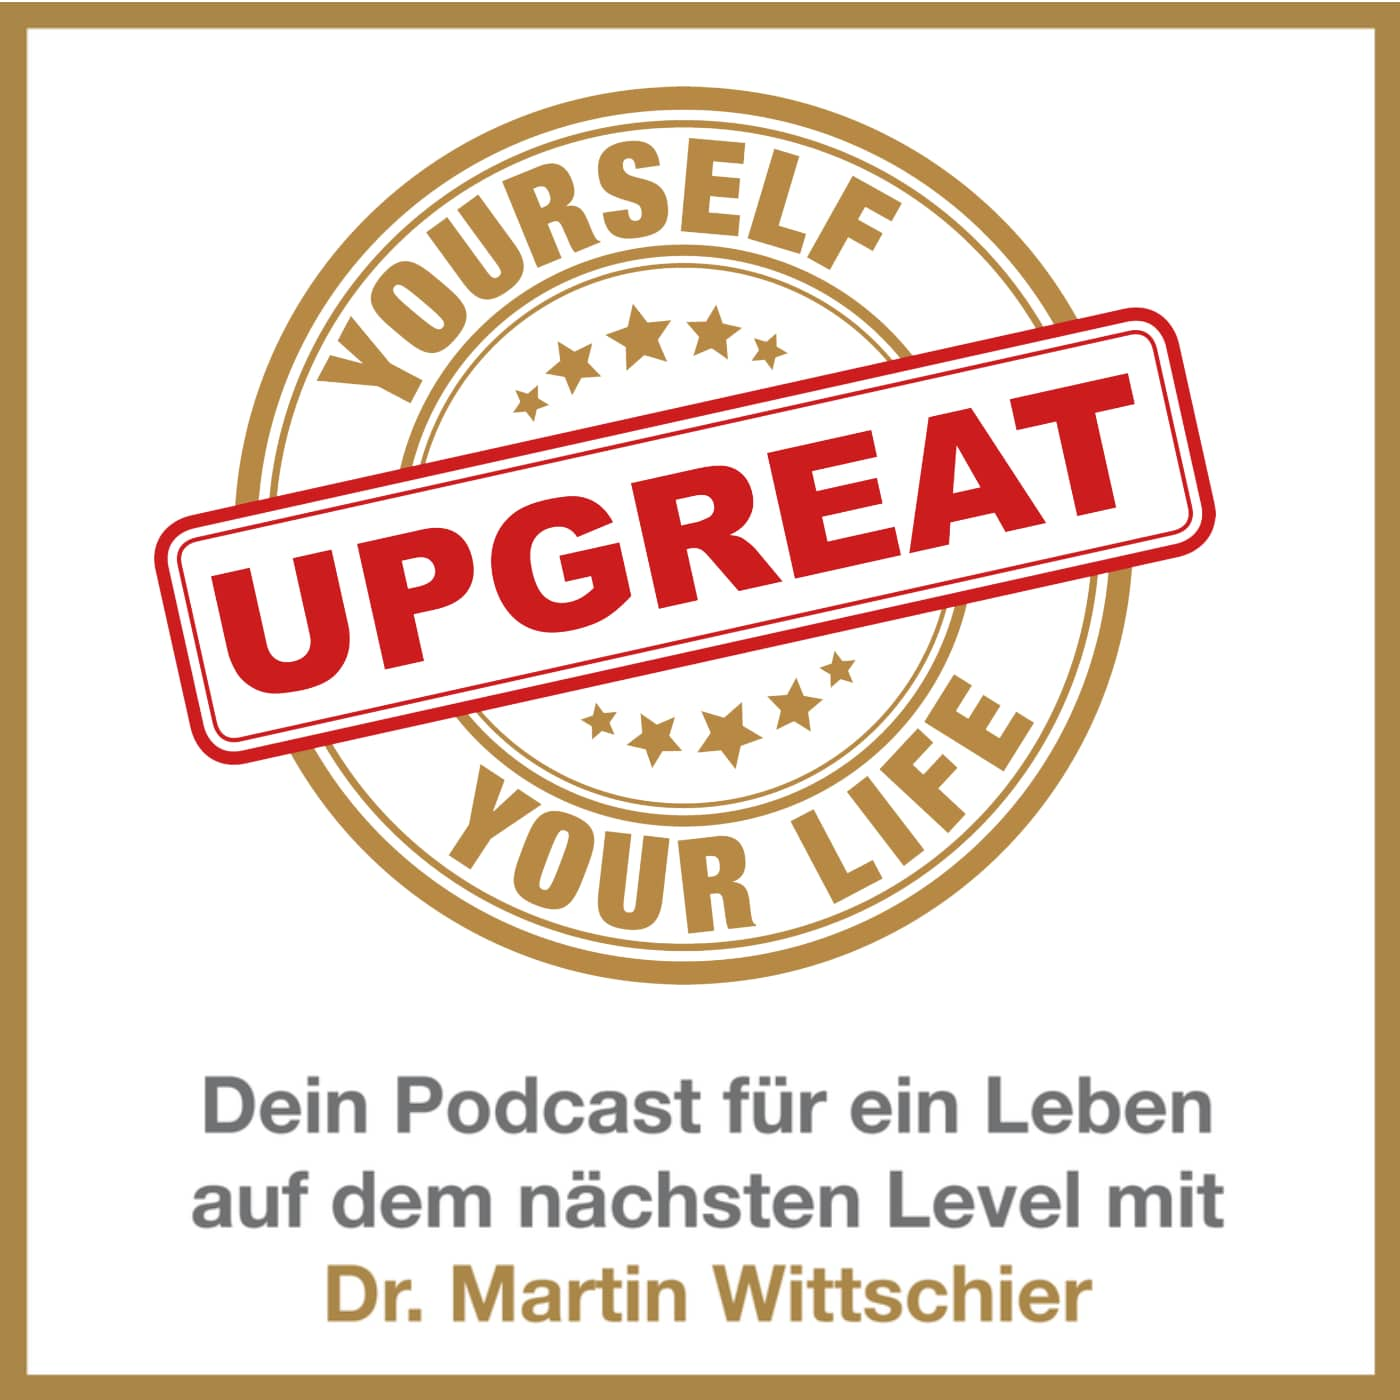 Upgreat yourself  Upgreat your life   Podcast Addict